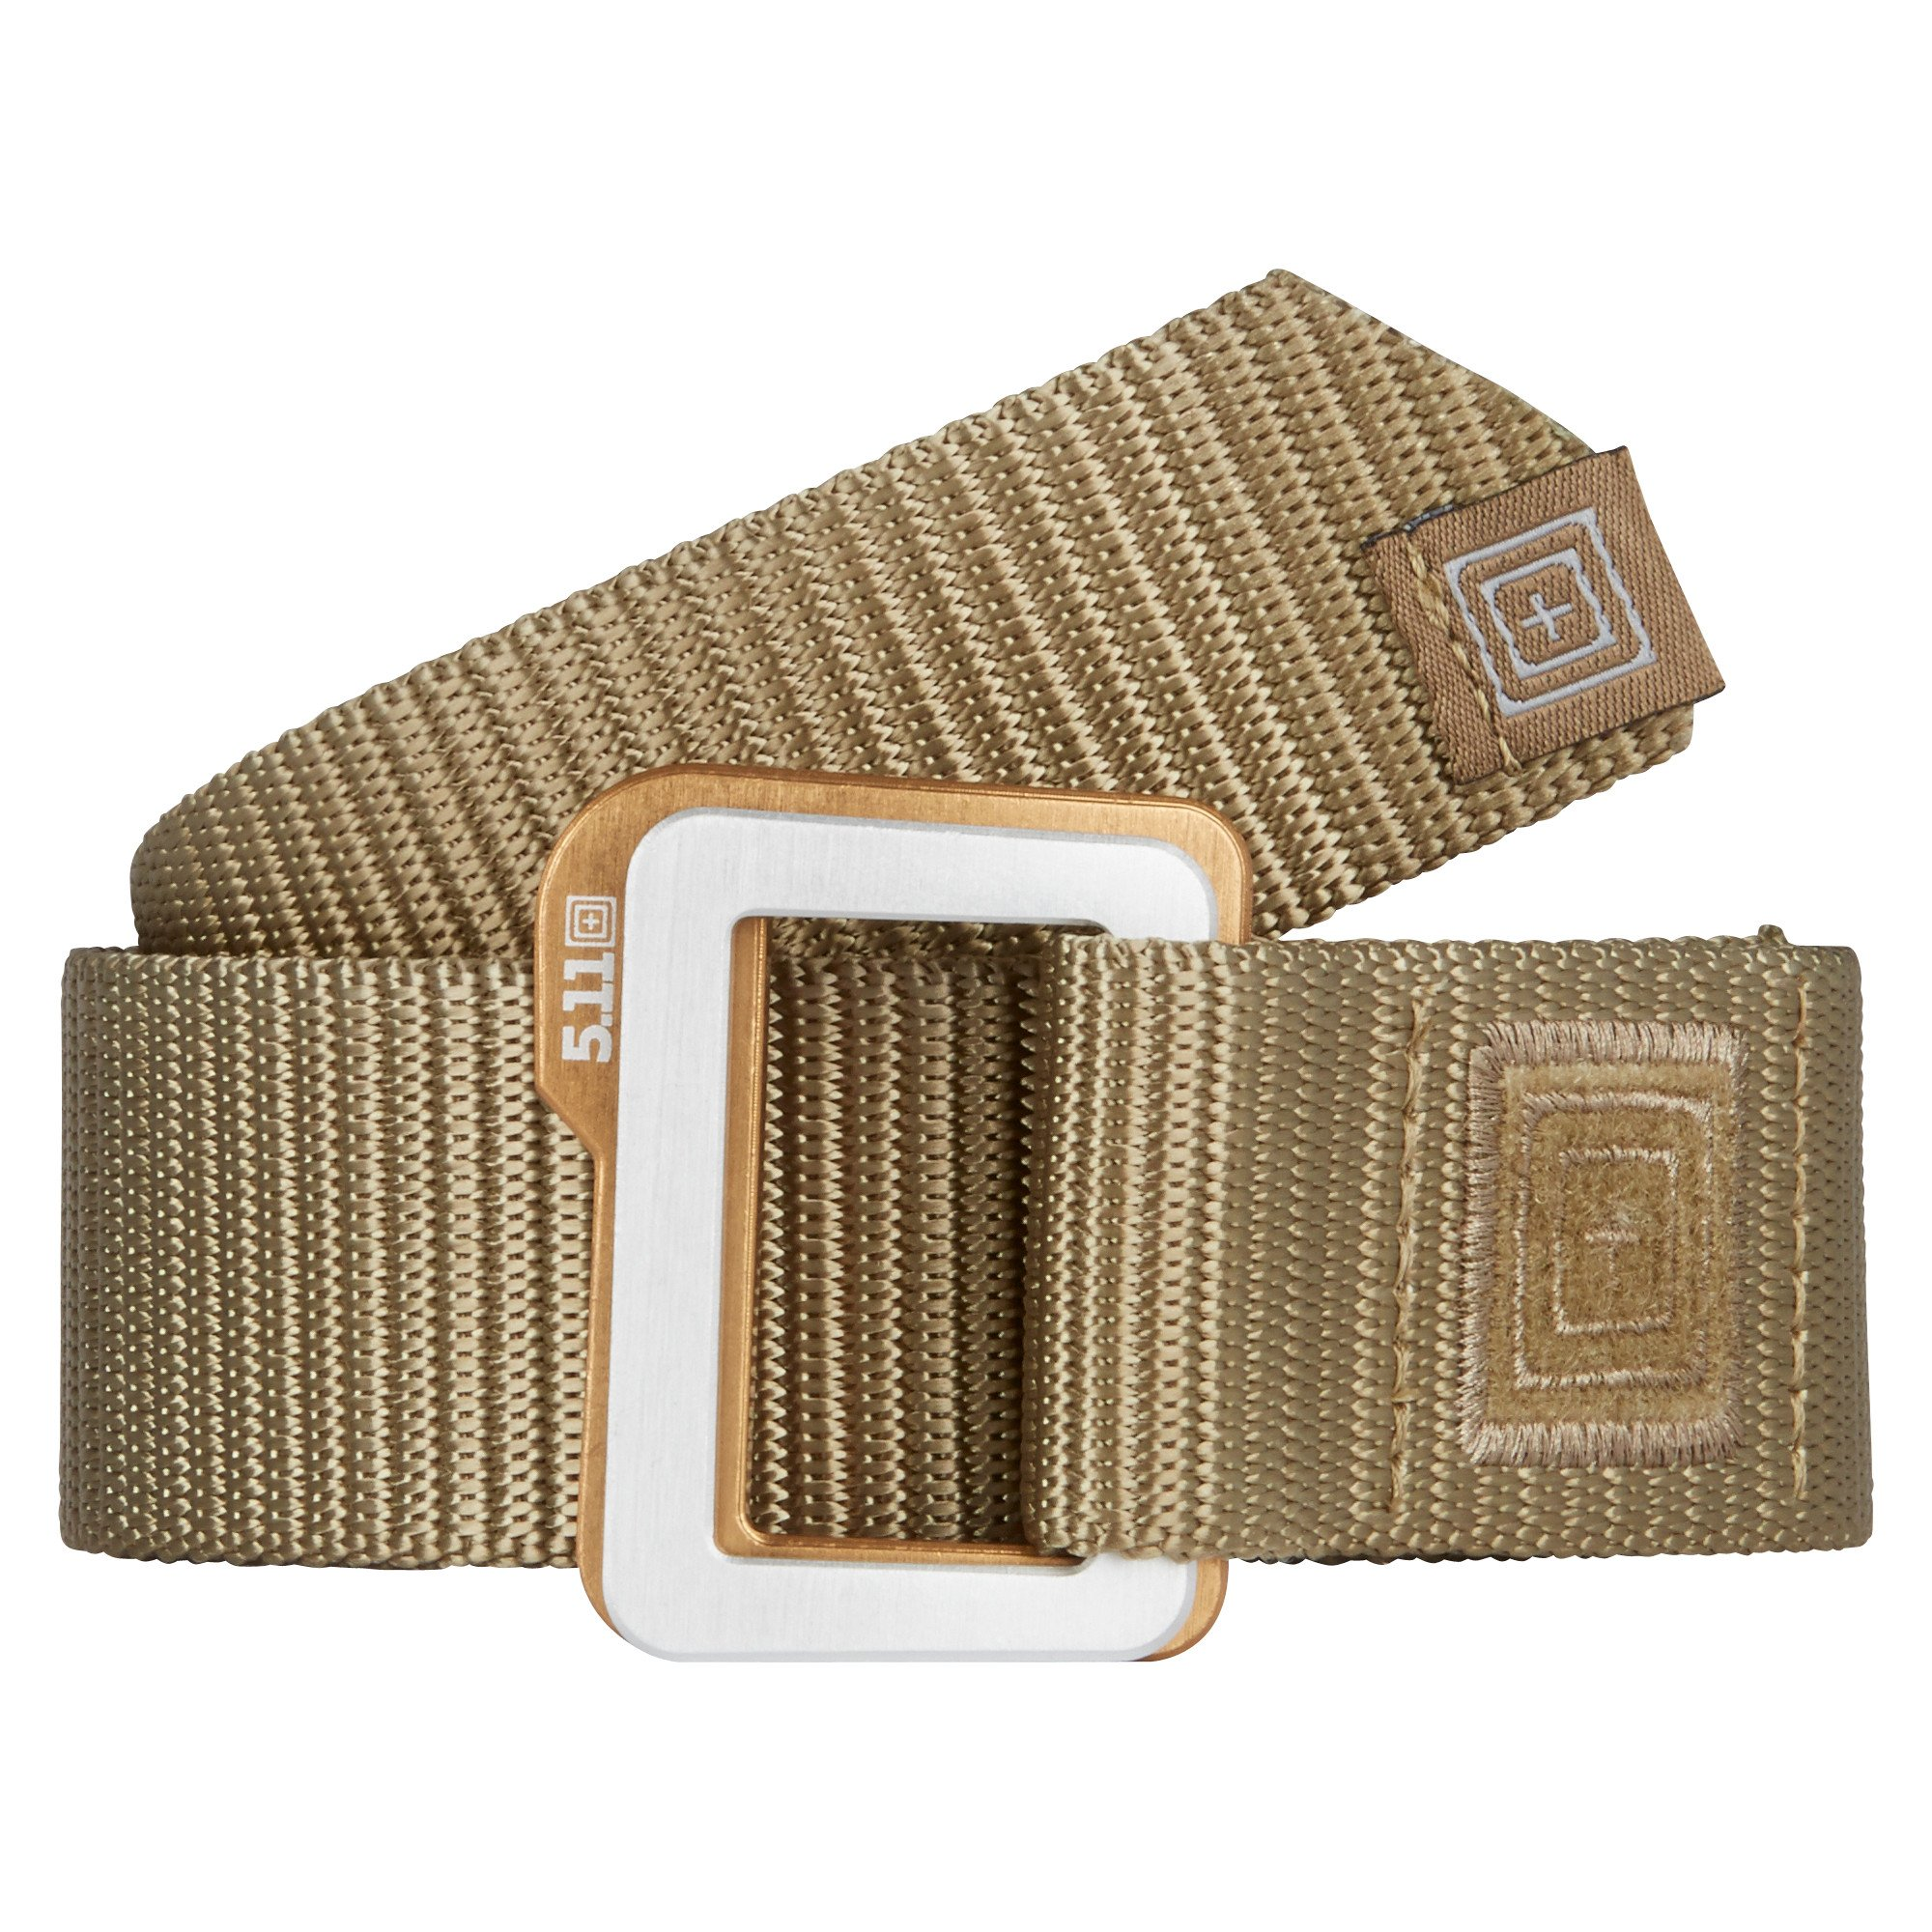 TRAVERSE DOUBLE BUCKLE BELT – Sandstone